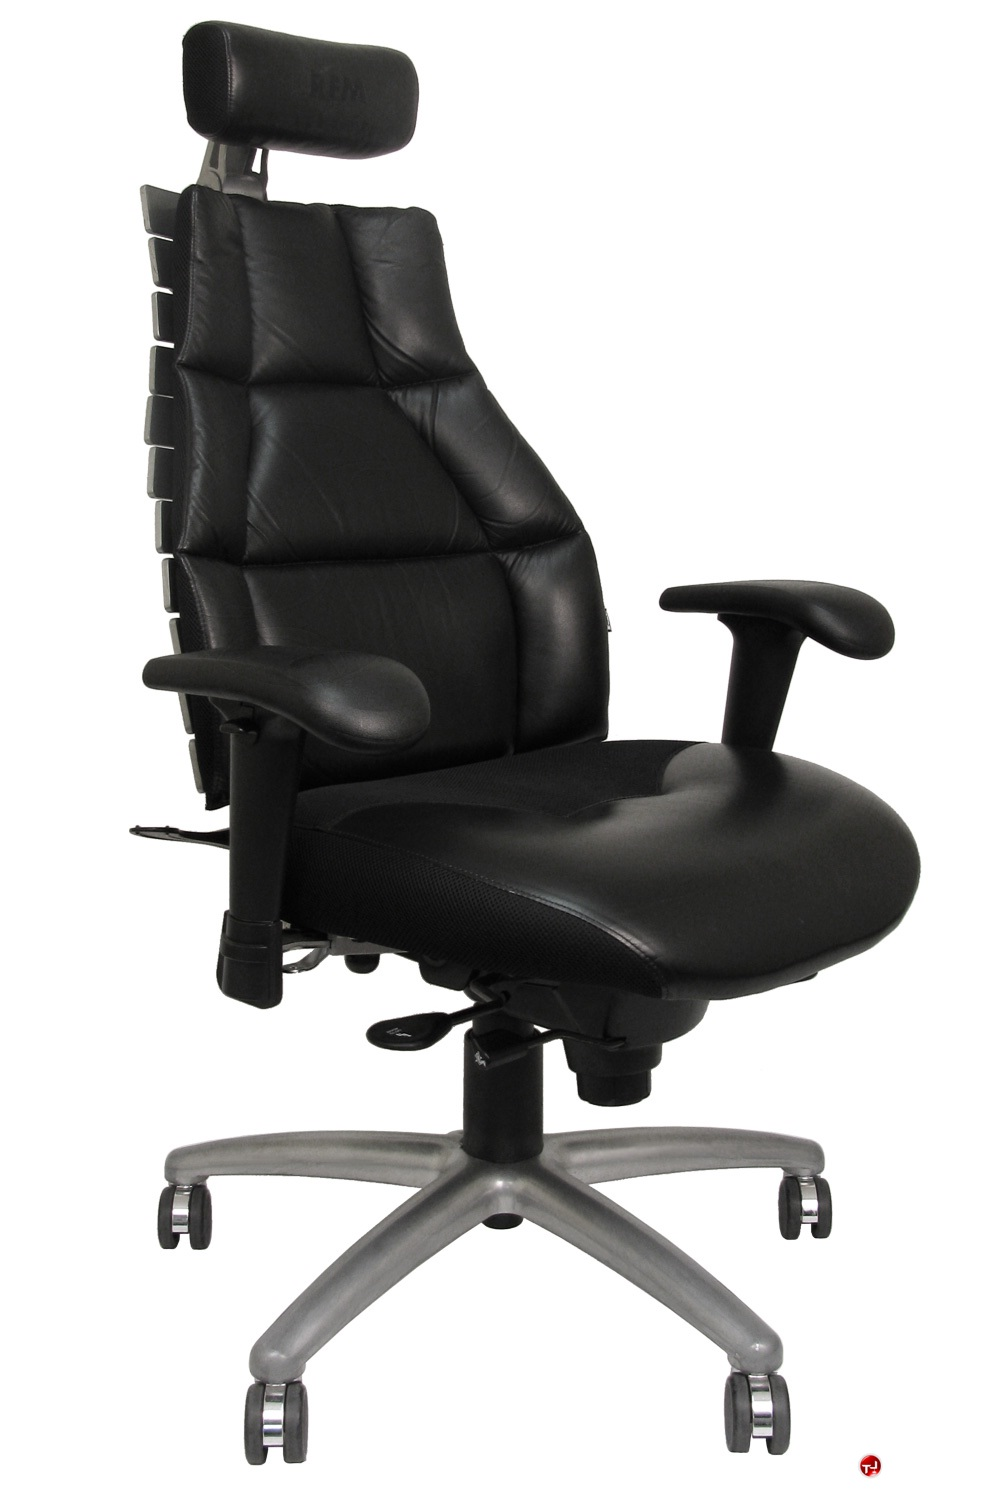 the office leader rfm verte 2200 high back executive office chair